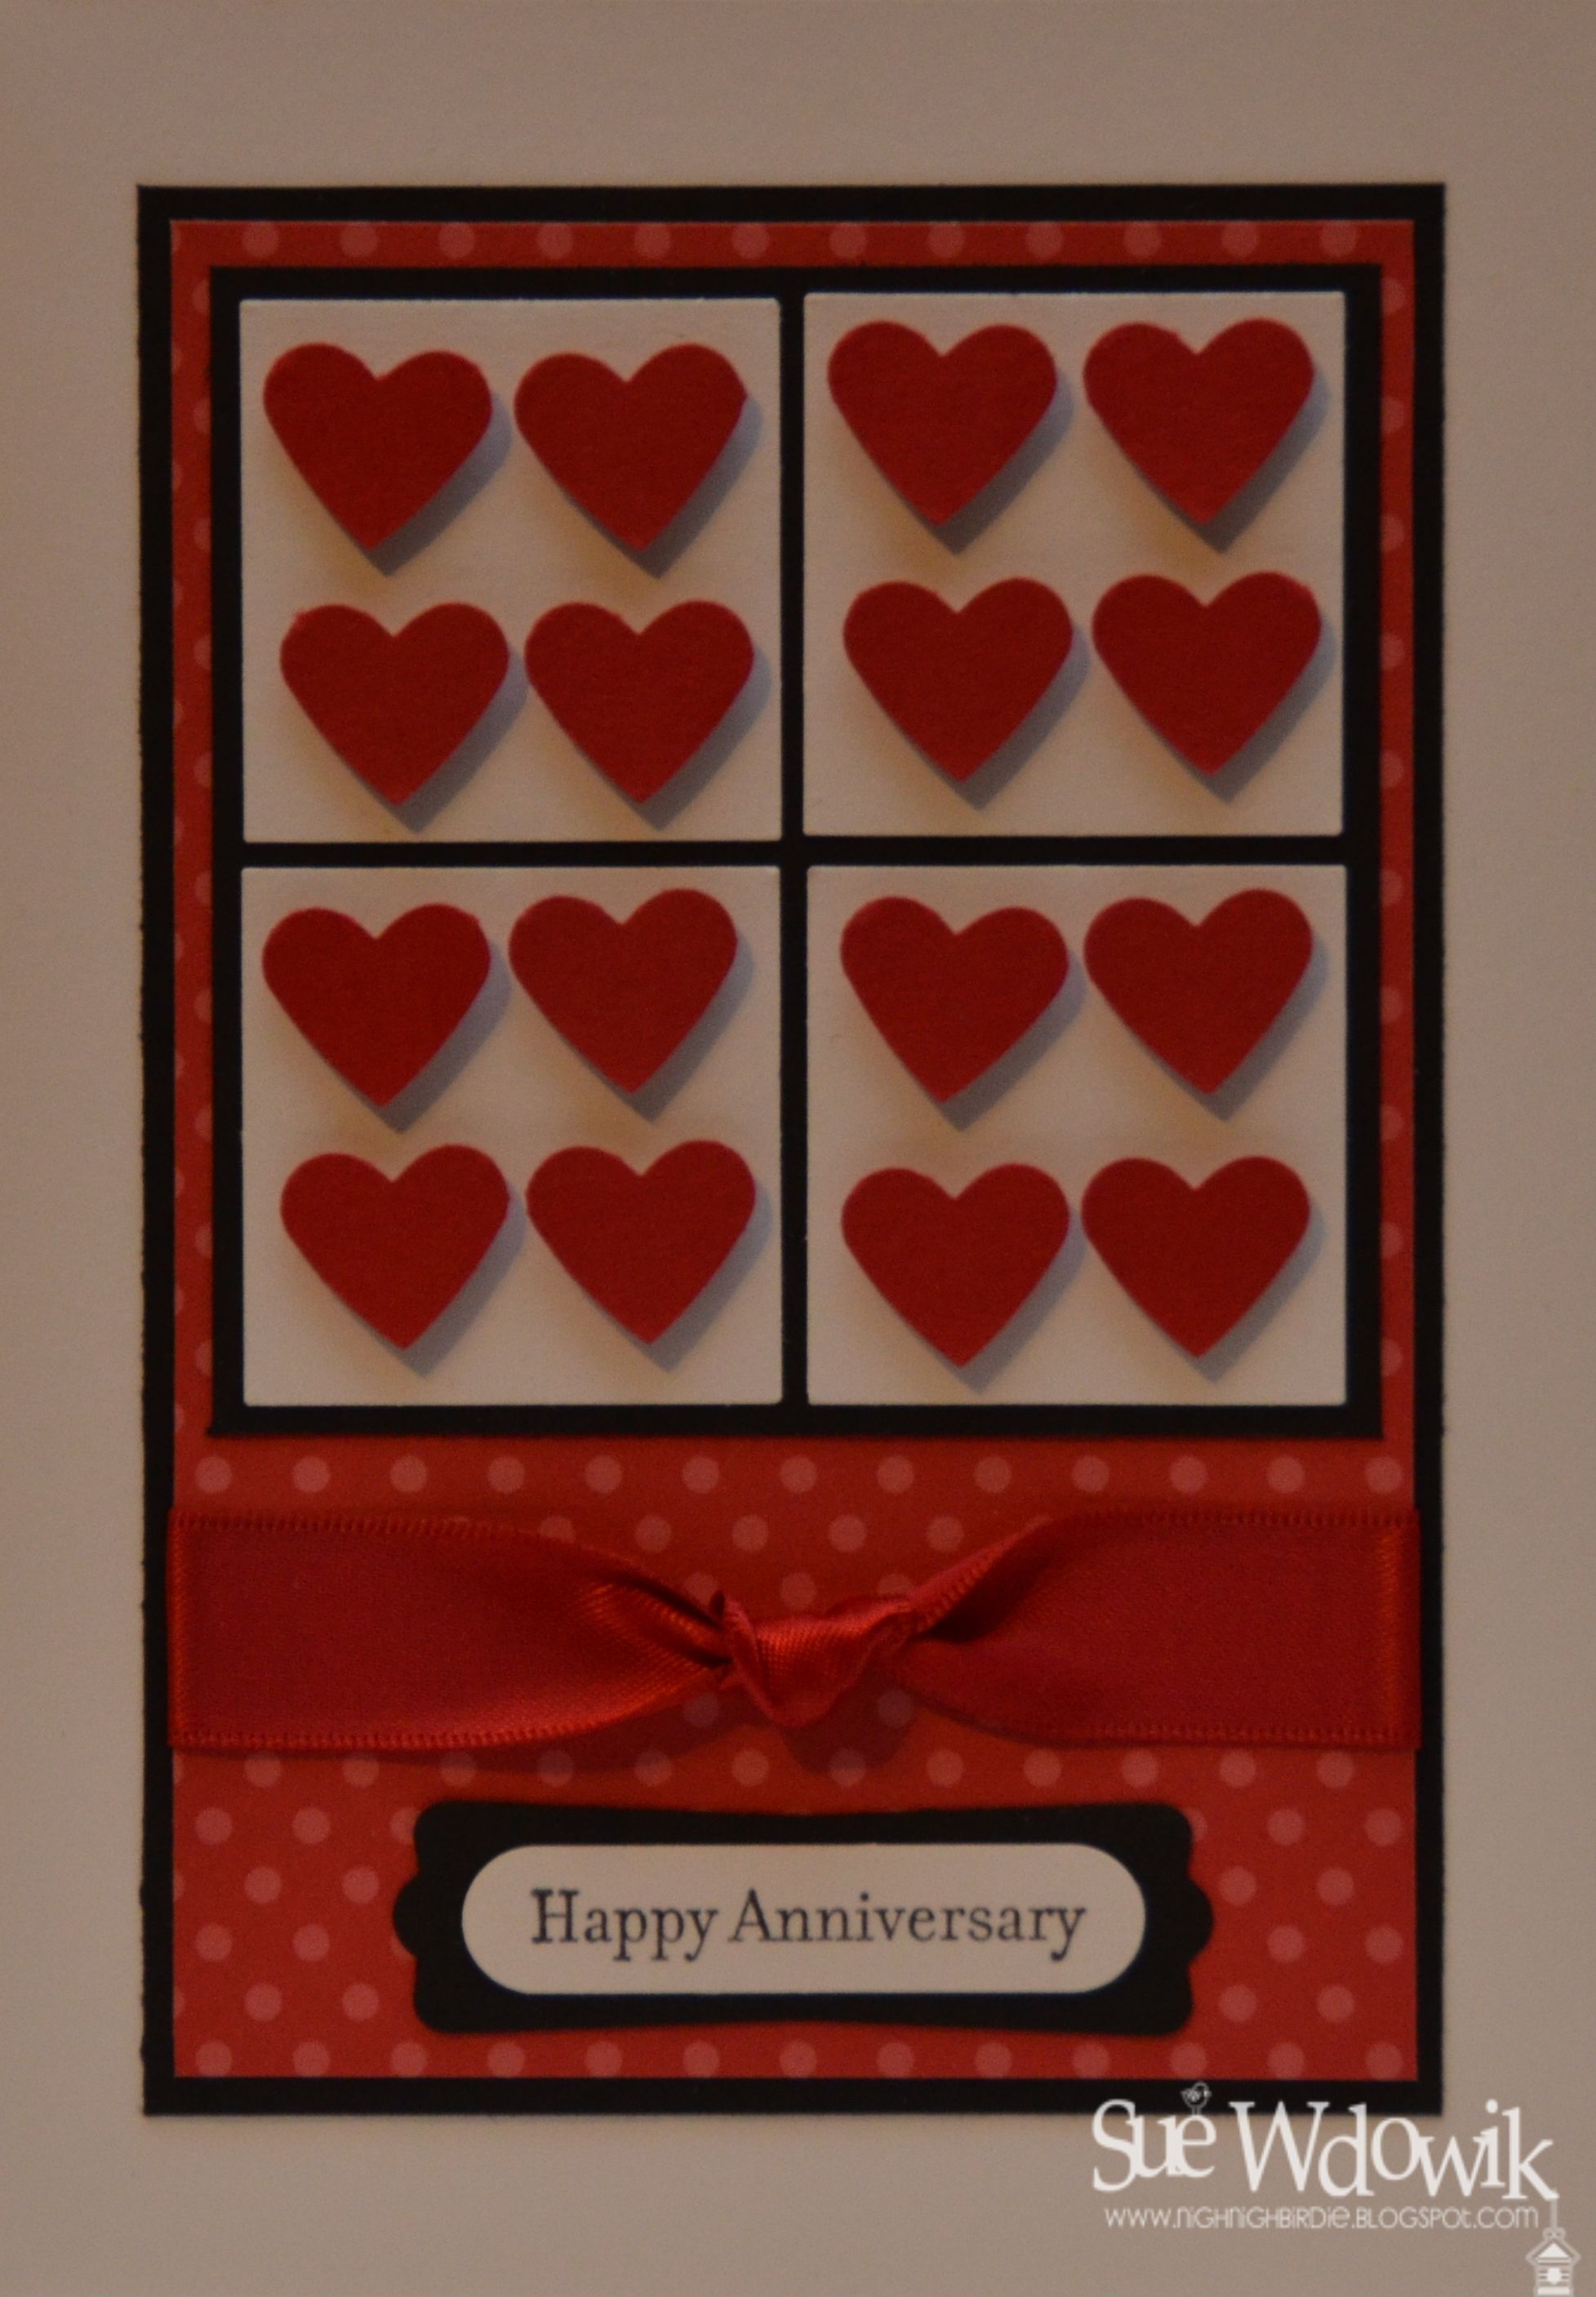 Happy Anniversary Card Handmade By Sue Wdowik Independent Stampin